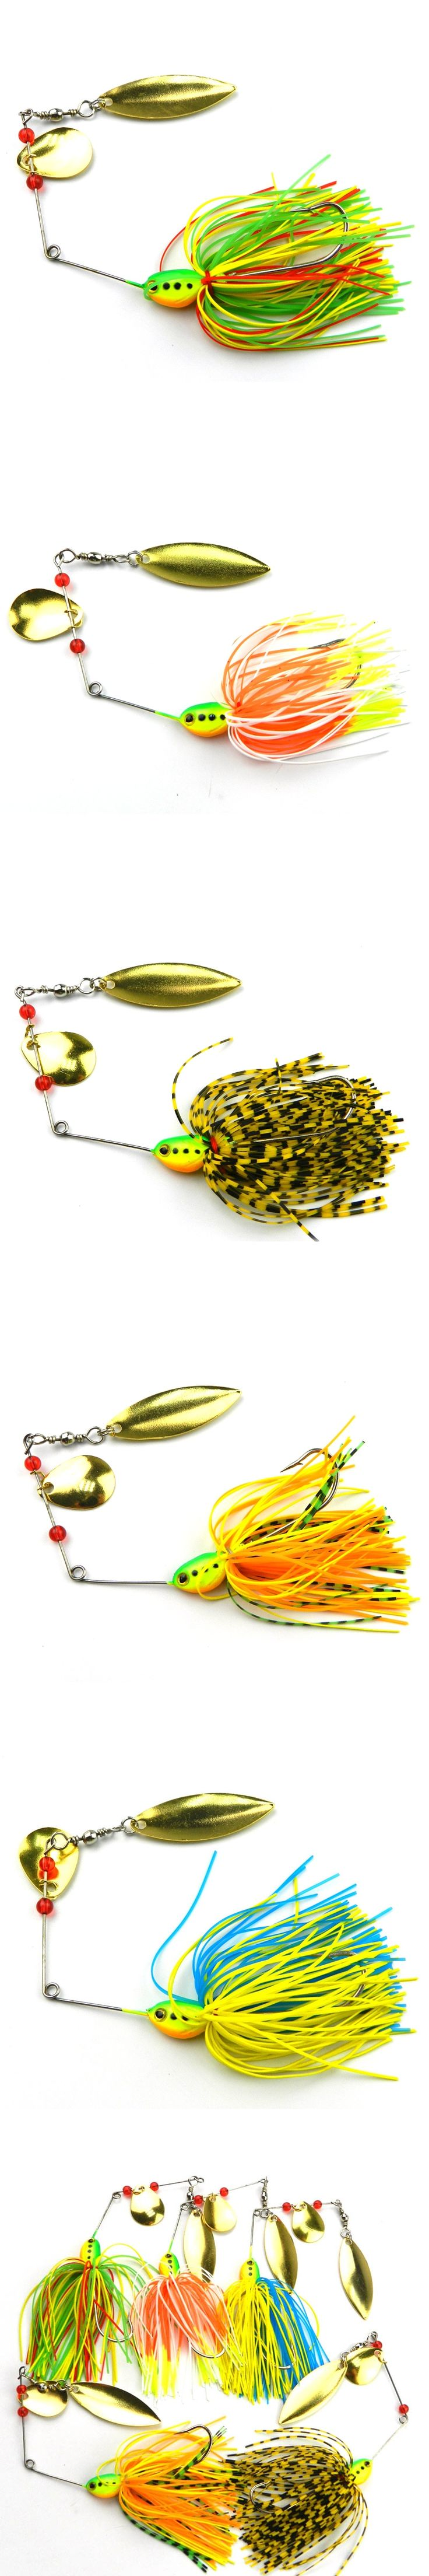 Hot Selling 5Pcs/Lot 3D Eyes Rotating Fish-type Sequined Beard Lures Noisy Bait Buzz bait Composite Bait Target for Catfish Bass